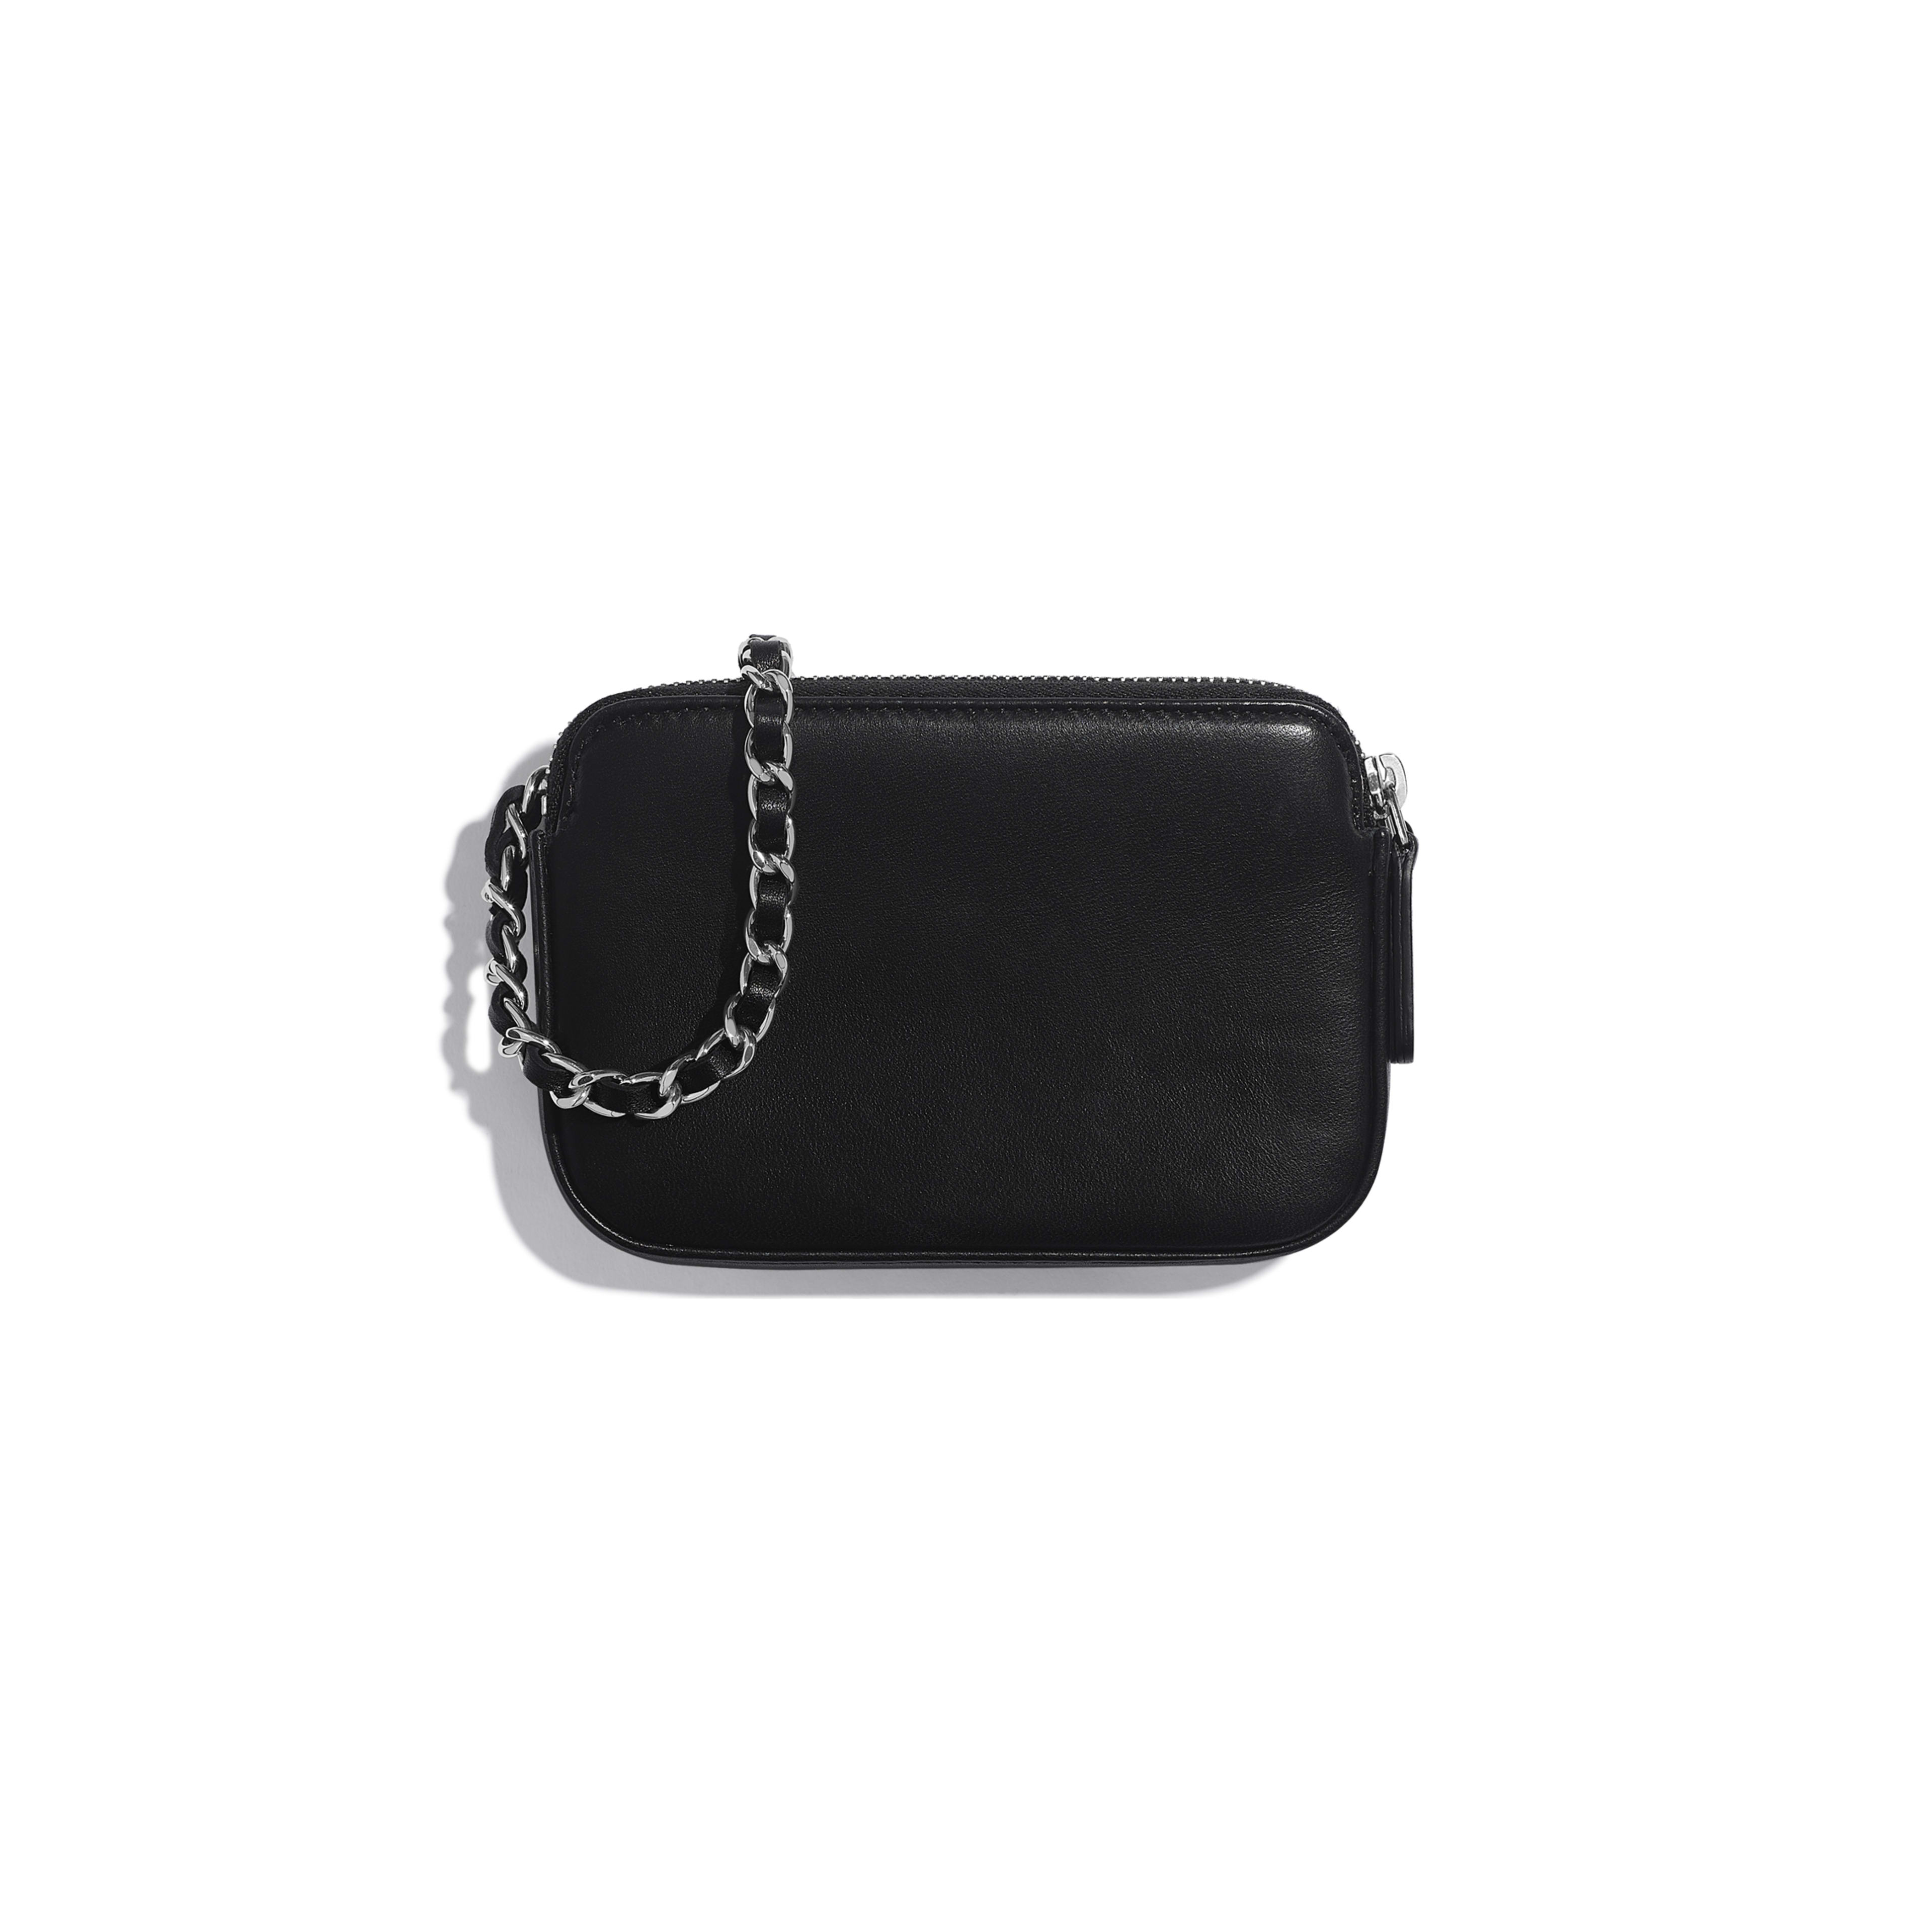 Clutch With Chain - Black, Silver & White - Lambskin, Sequins & Silver-Tone Metal - Alternative view - see full sized version